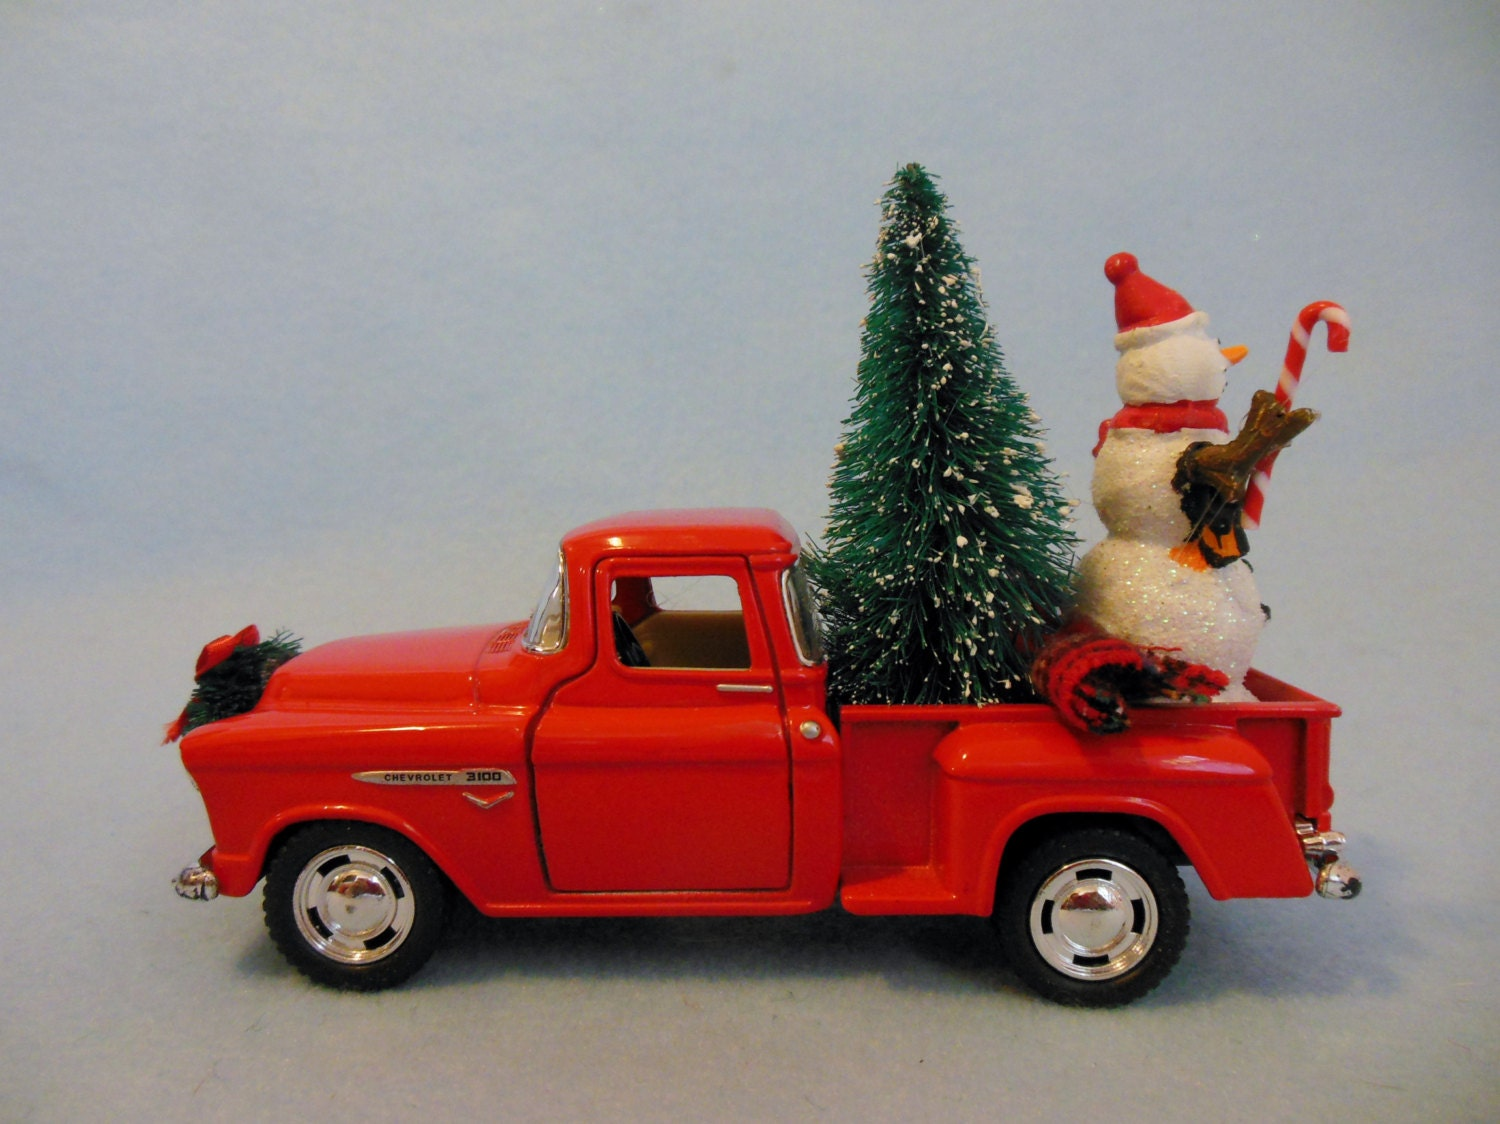 RED TRUCK Chevy Pick-up Truck with CHRISTMAS Tree and